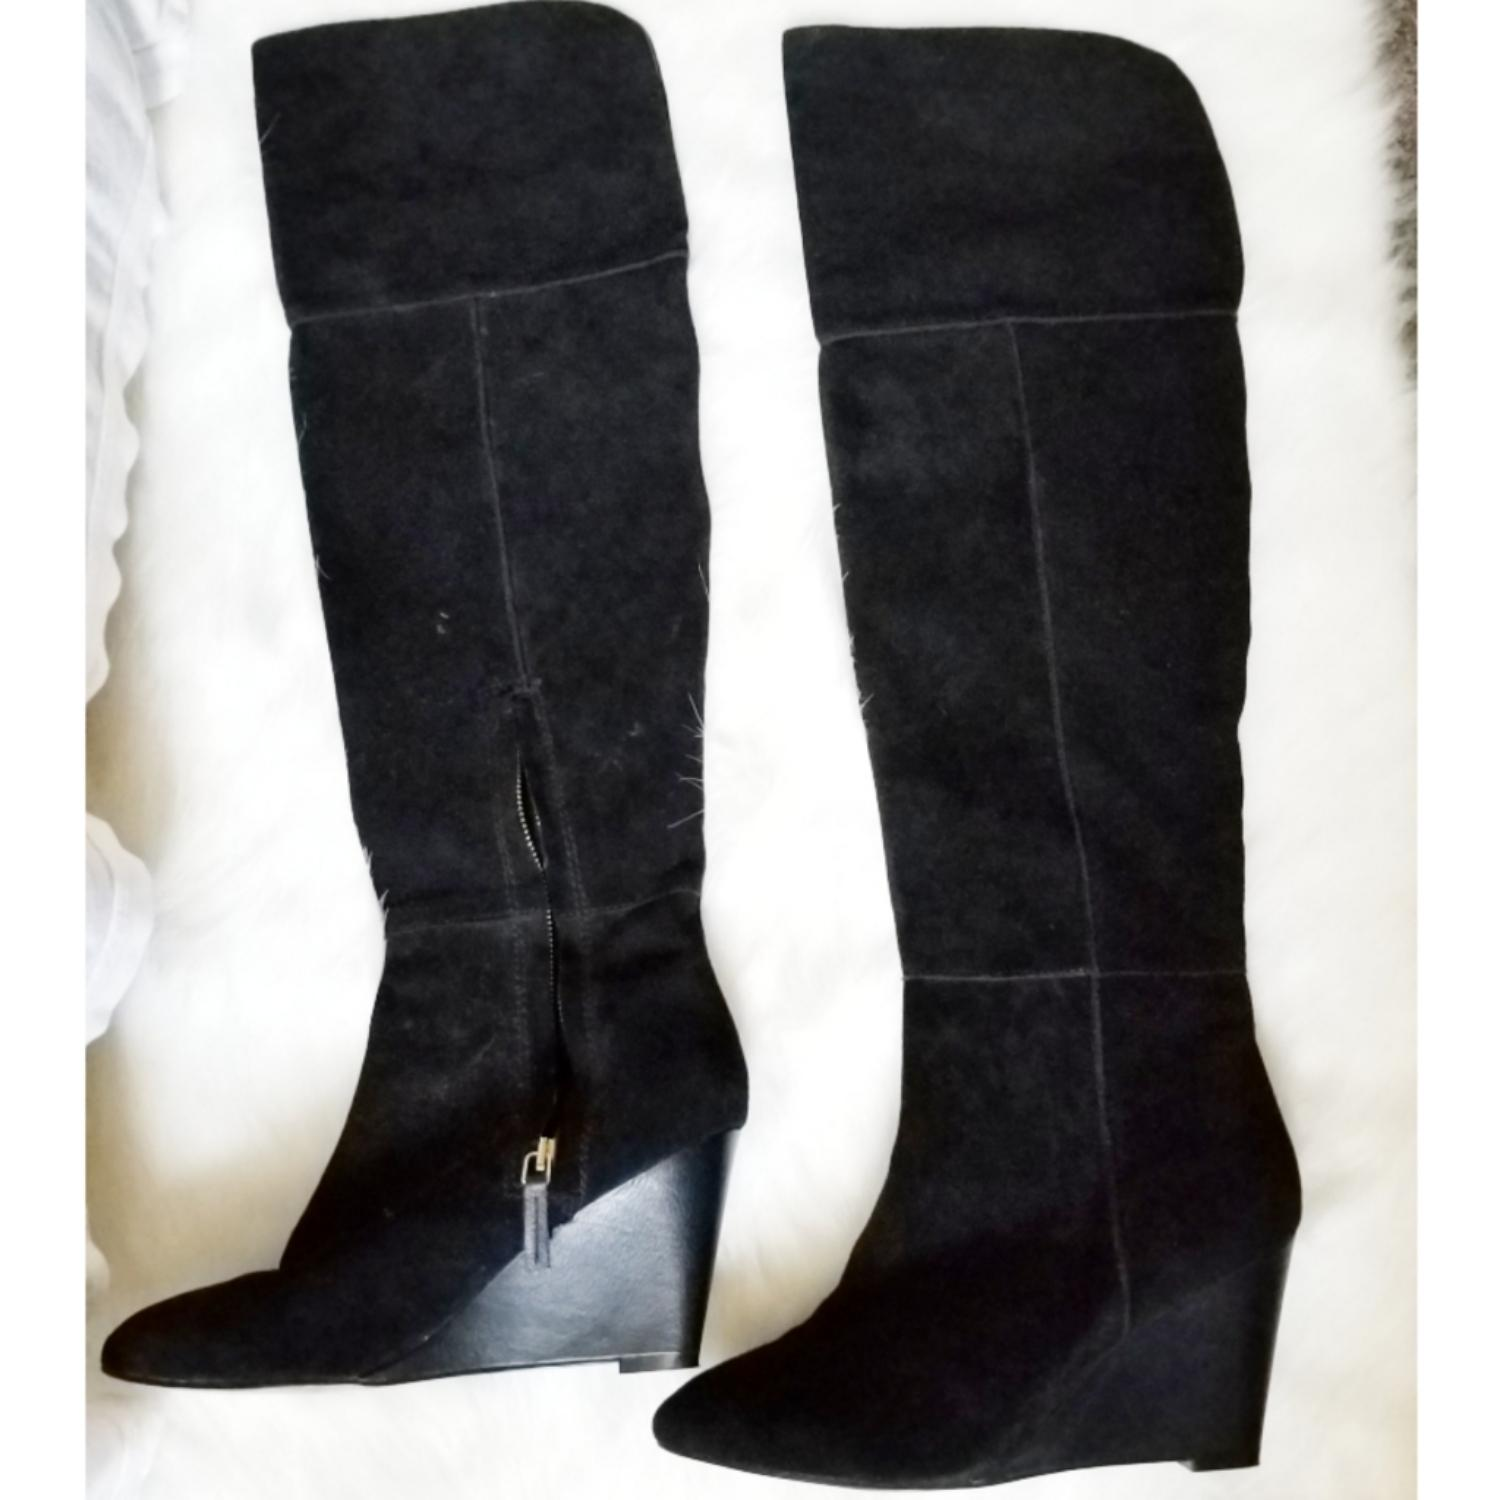 ef28a0ba5d8 Zara Zara Zara Black Over The Knee Wedge 6.5 Boots Booties Size EU 37 (. Steve  Madden Brown ...